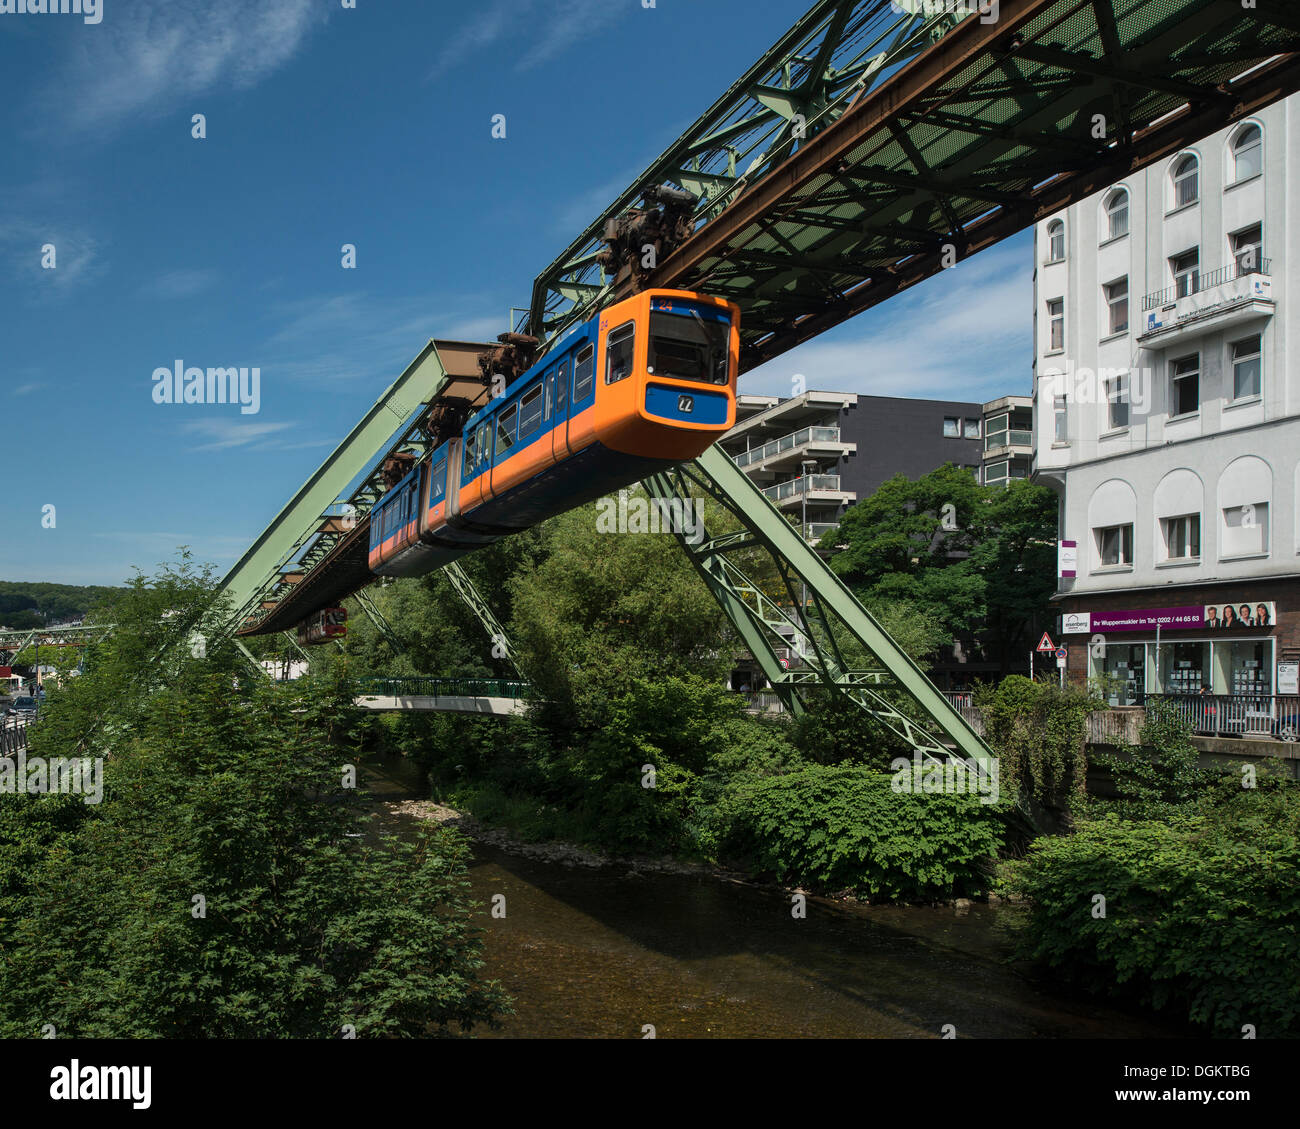 Wuppertal Schwebebahn or Wuppertal Floating Tram, suspension railway, over the Wupper river, landmark of Wuppertal - Stock Image